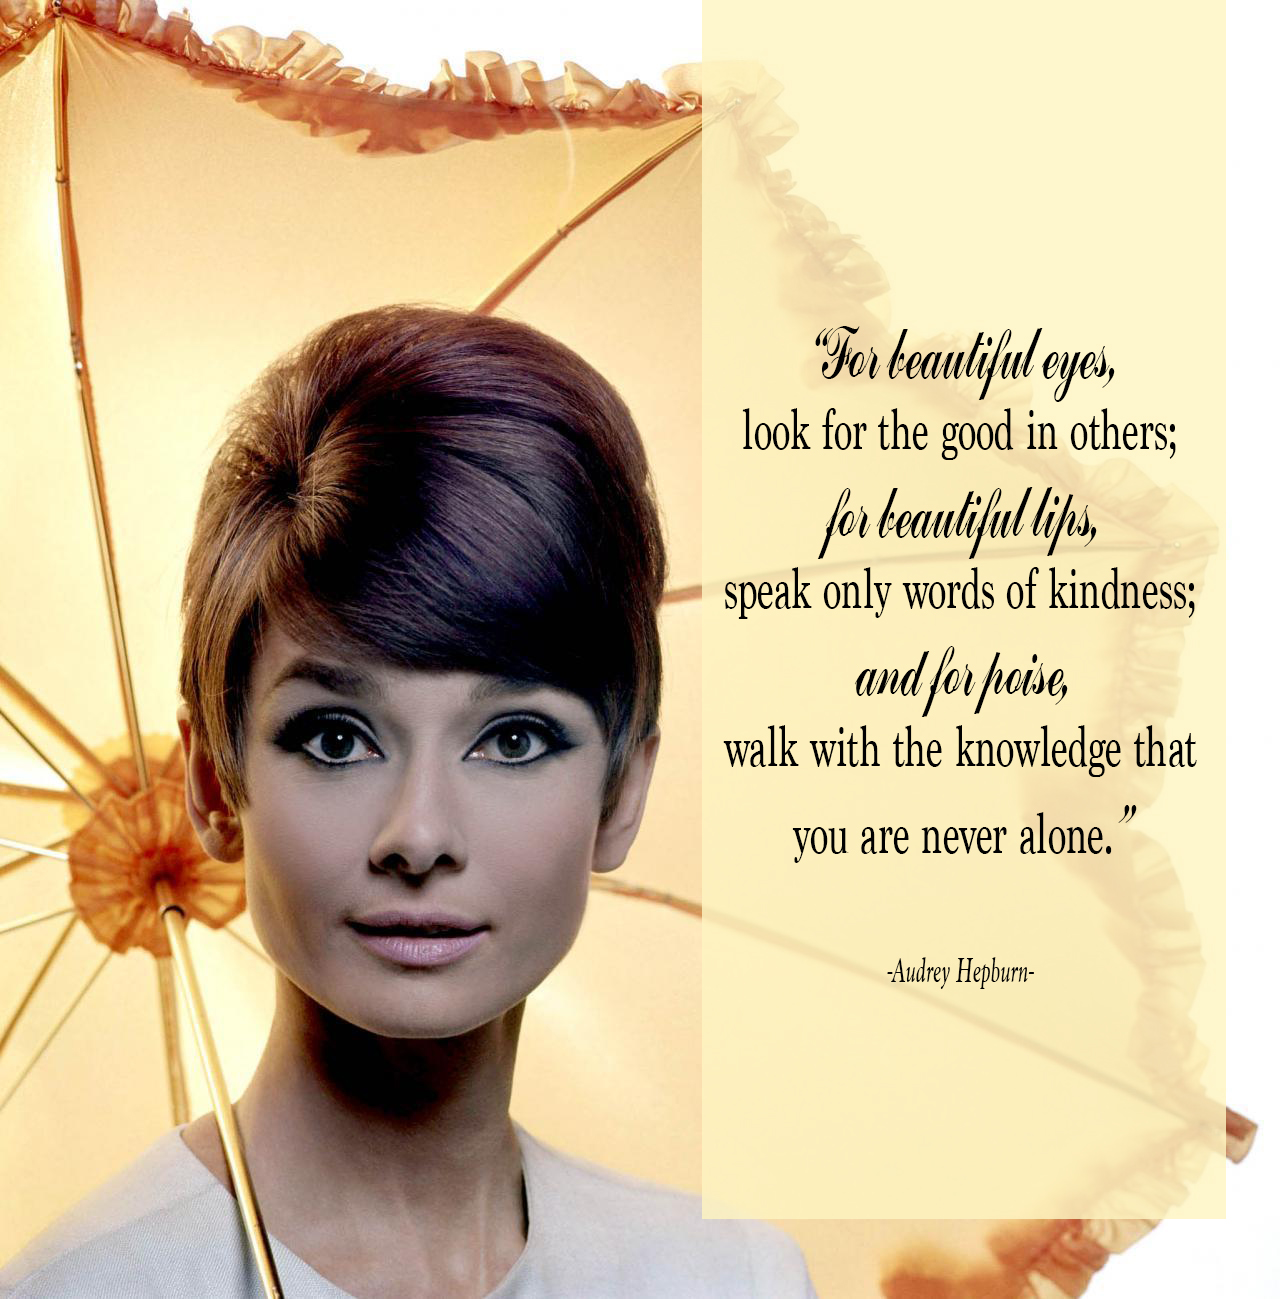 A Quote For A Beautiful Girl: 7 Audrey Hepburn Quotes To Live By